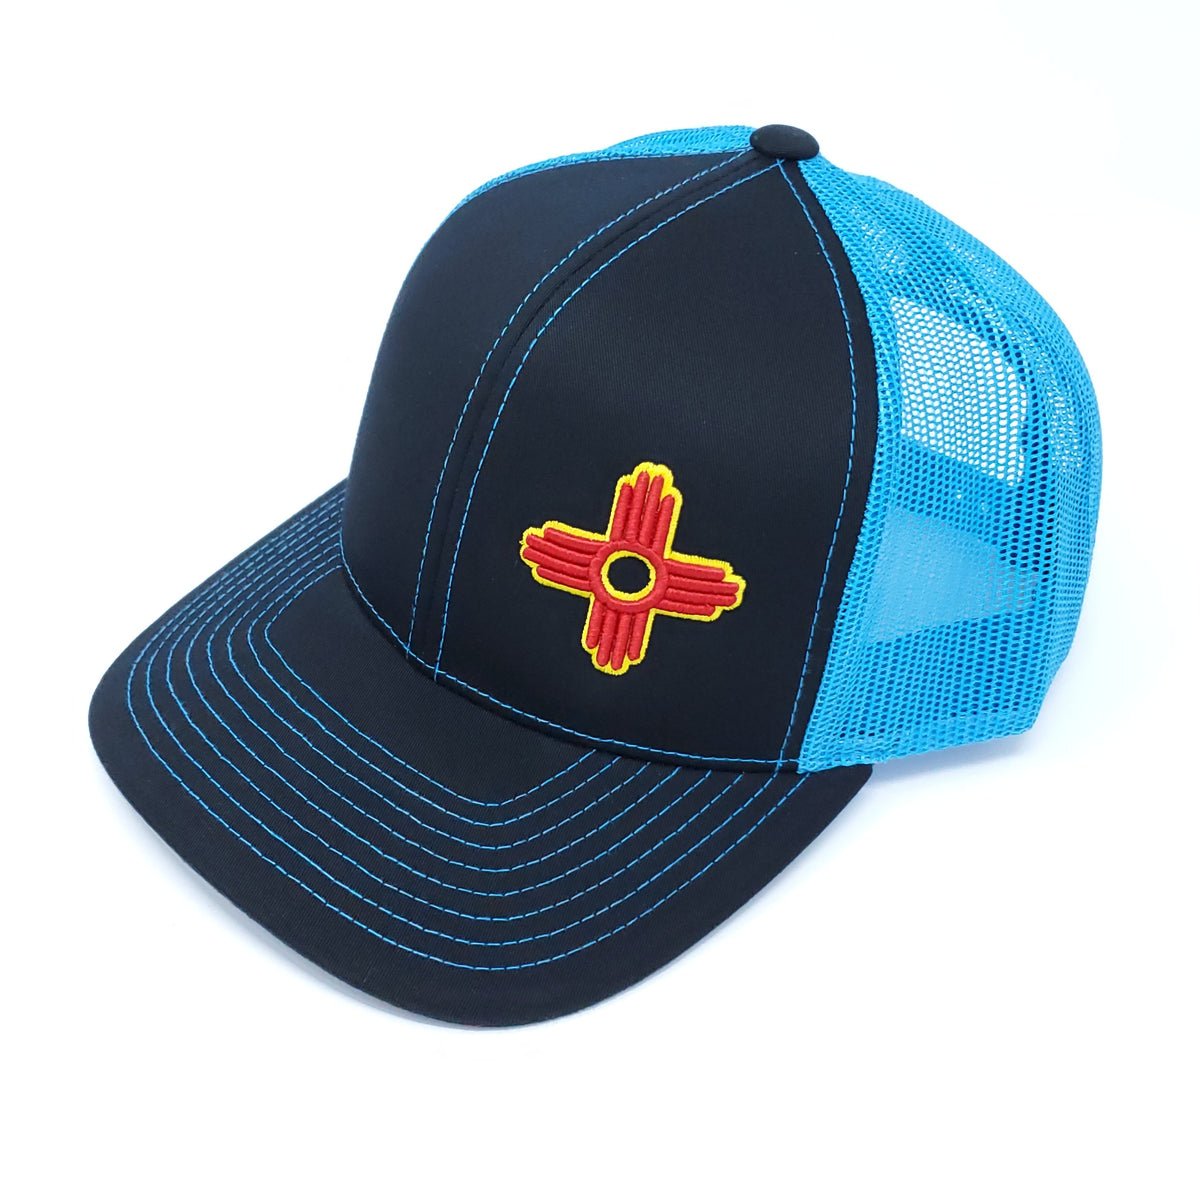 Neon Blue and Black Trucker Style Snapback with Embroidered Zia Symbol - Ragged Apparel Screen Printing and Signs - www.nmshirts.com